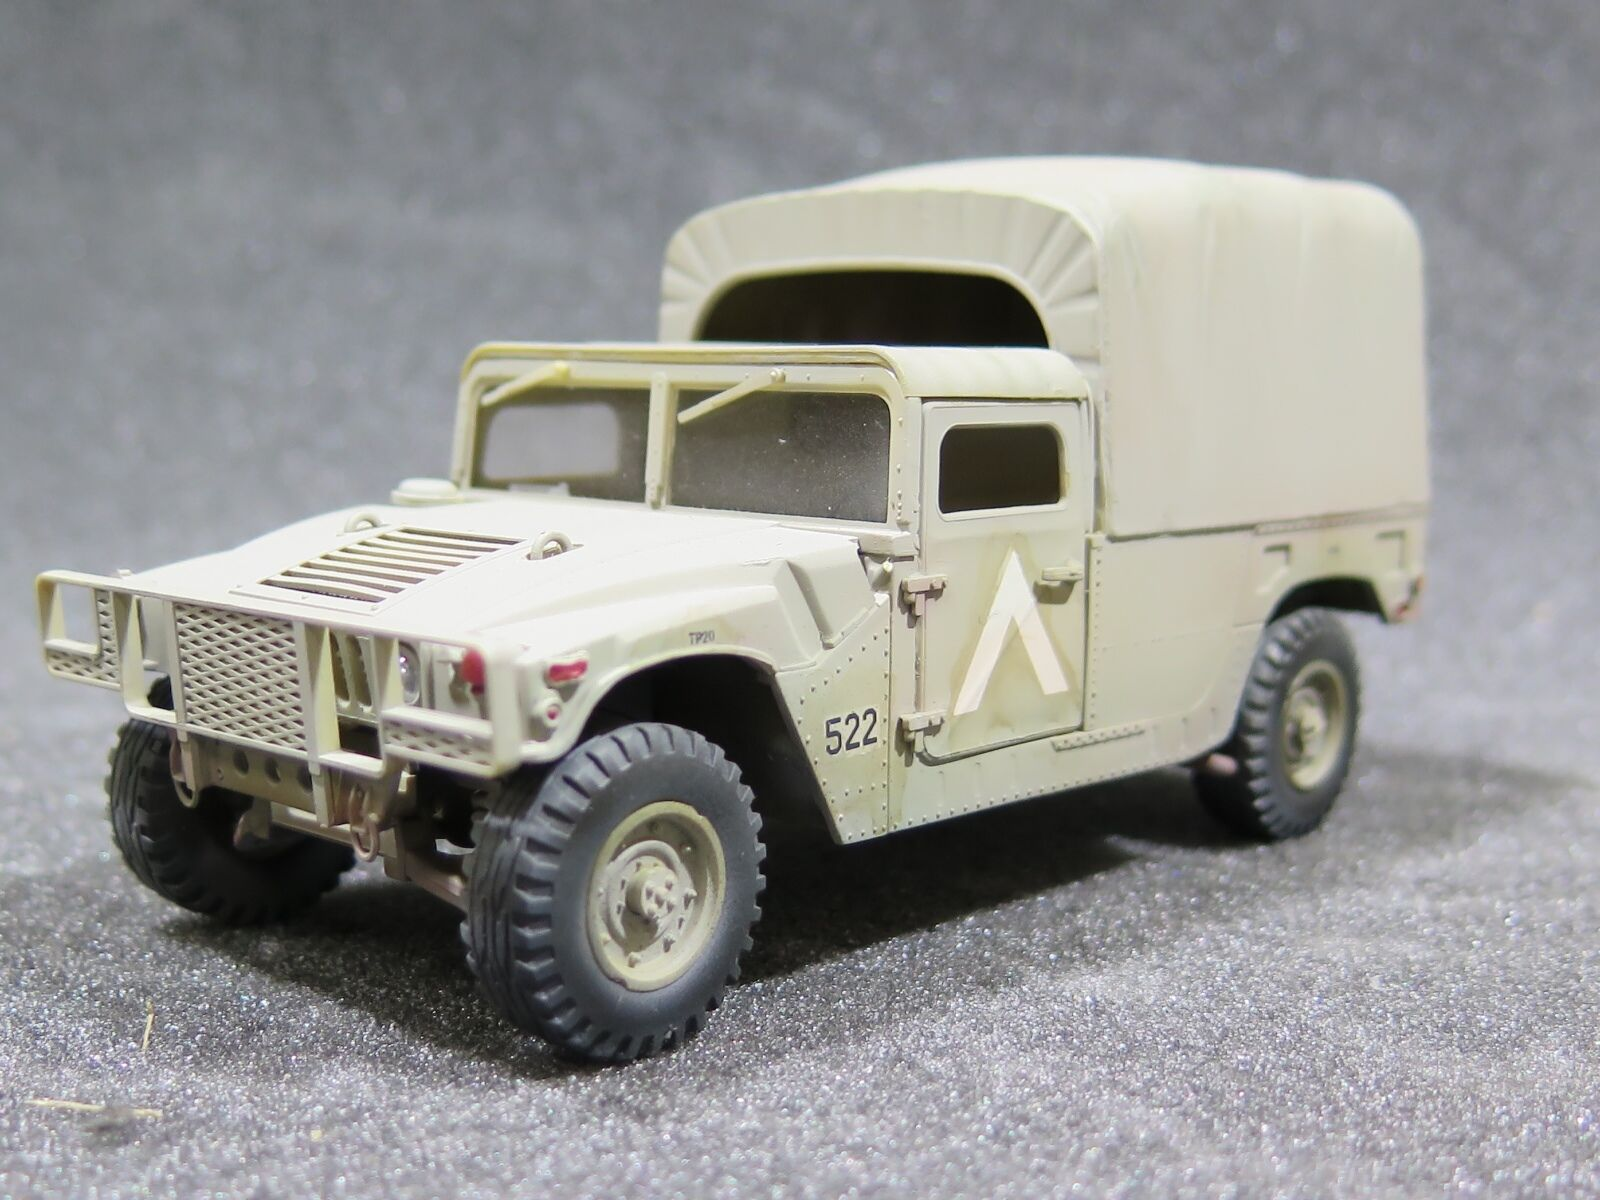 Mi0430 - 1 35 PRO BUILT - Plastic Revell Hummer with Canvas